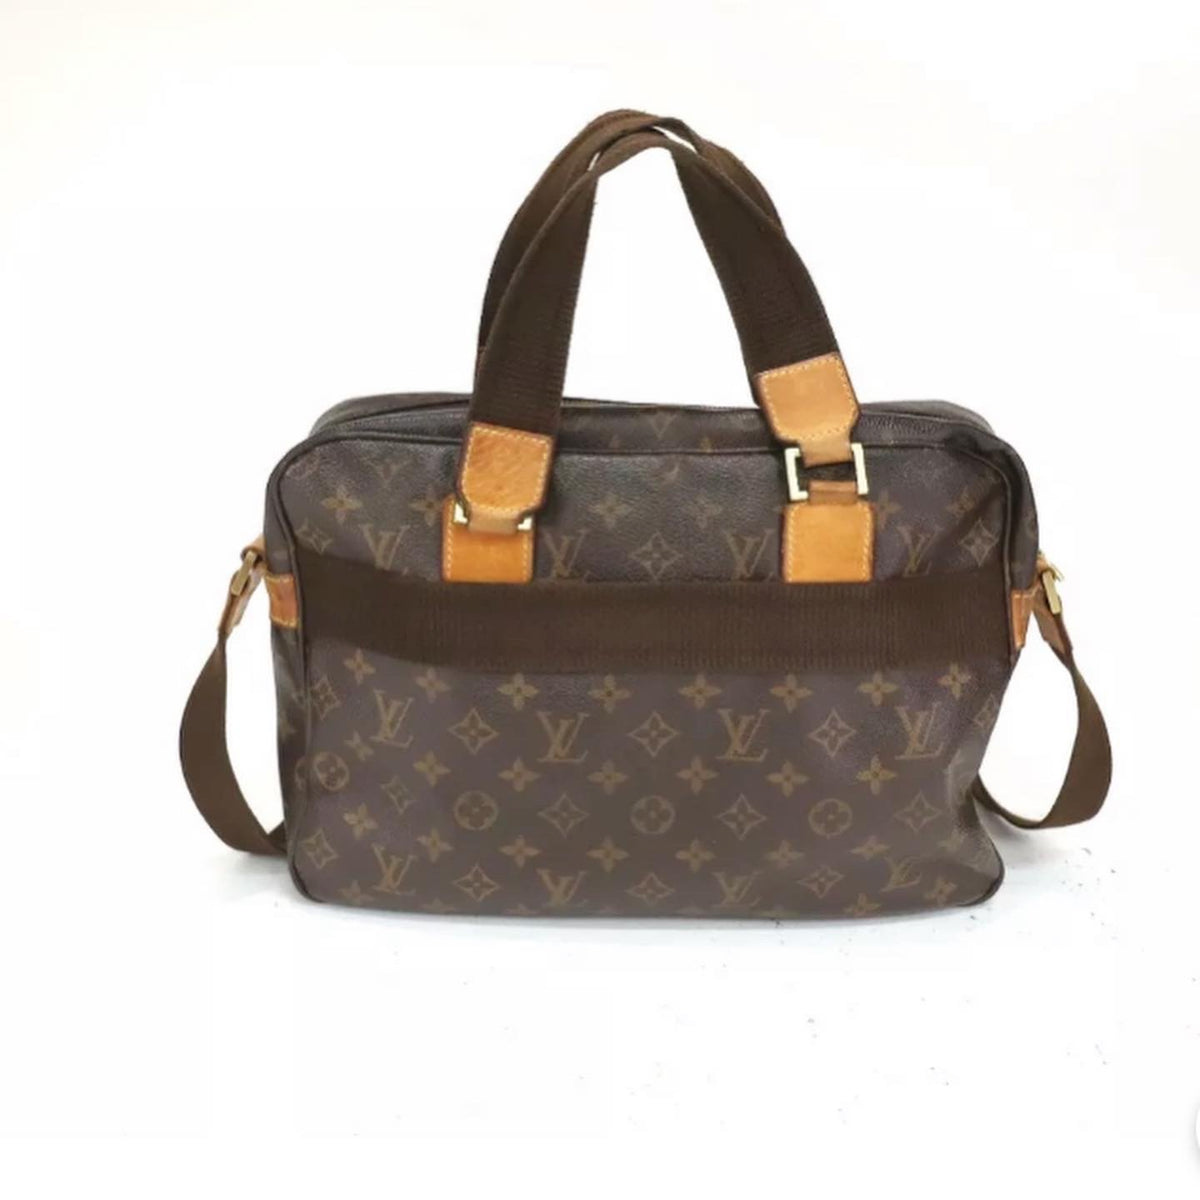 Louis Vuitton Sac Bosphore